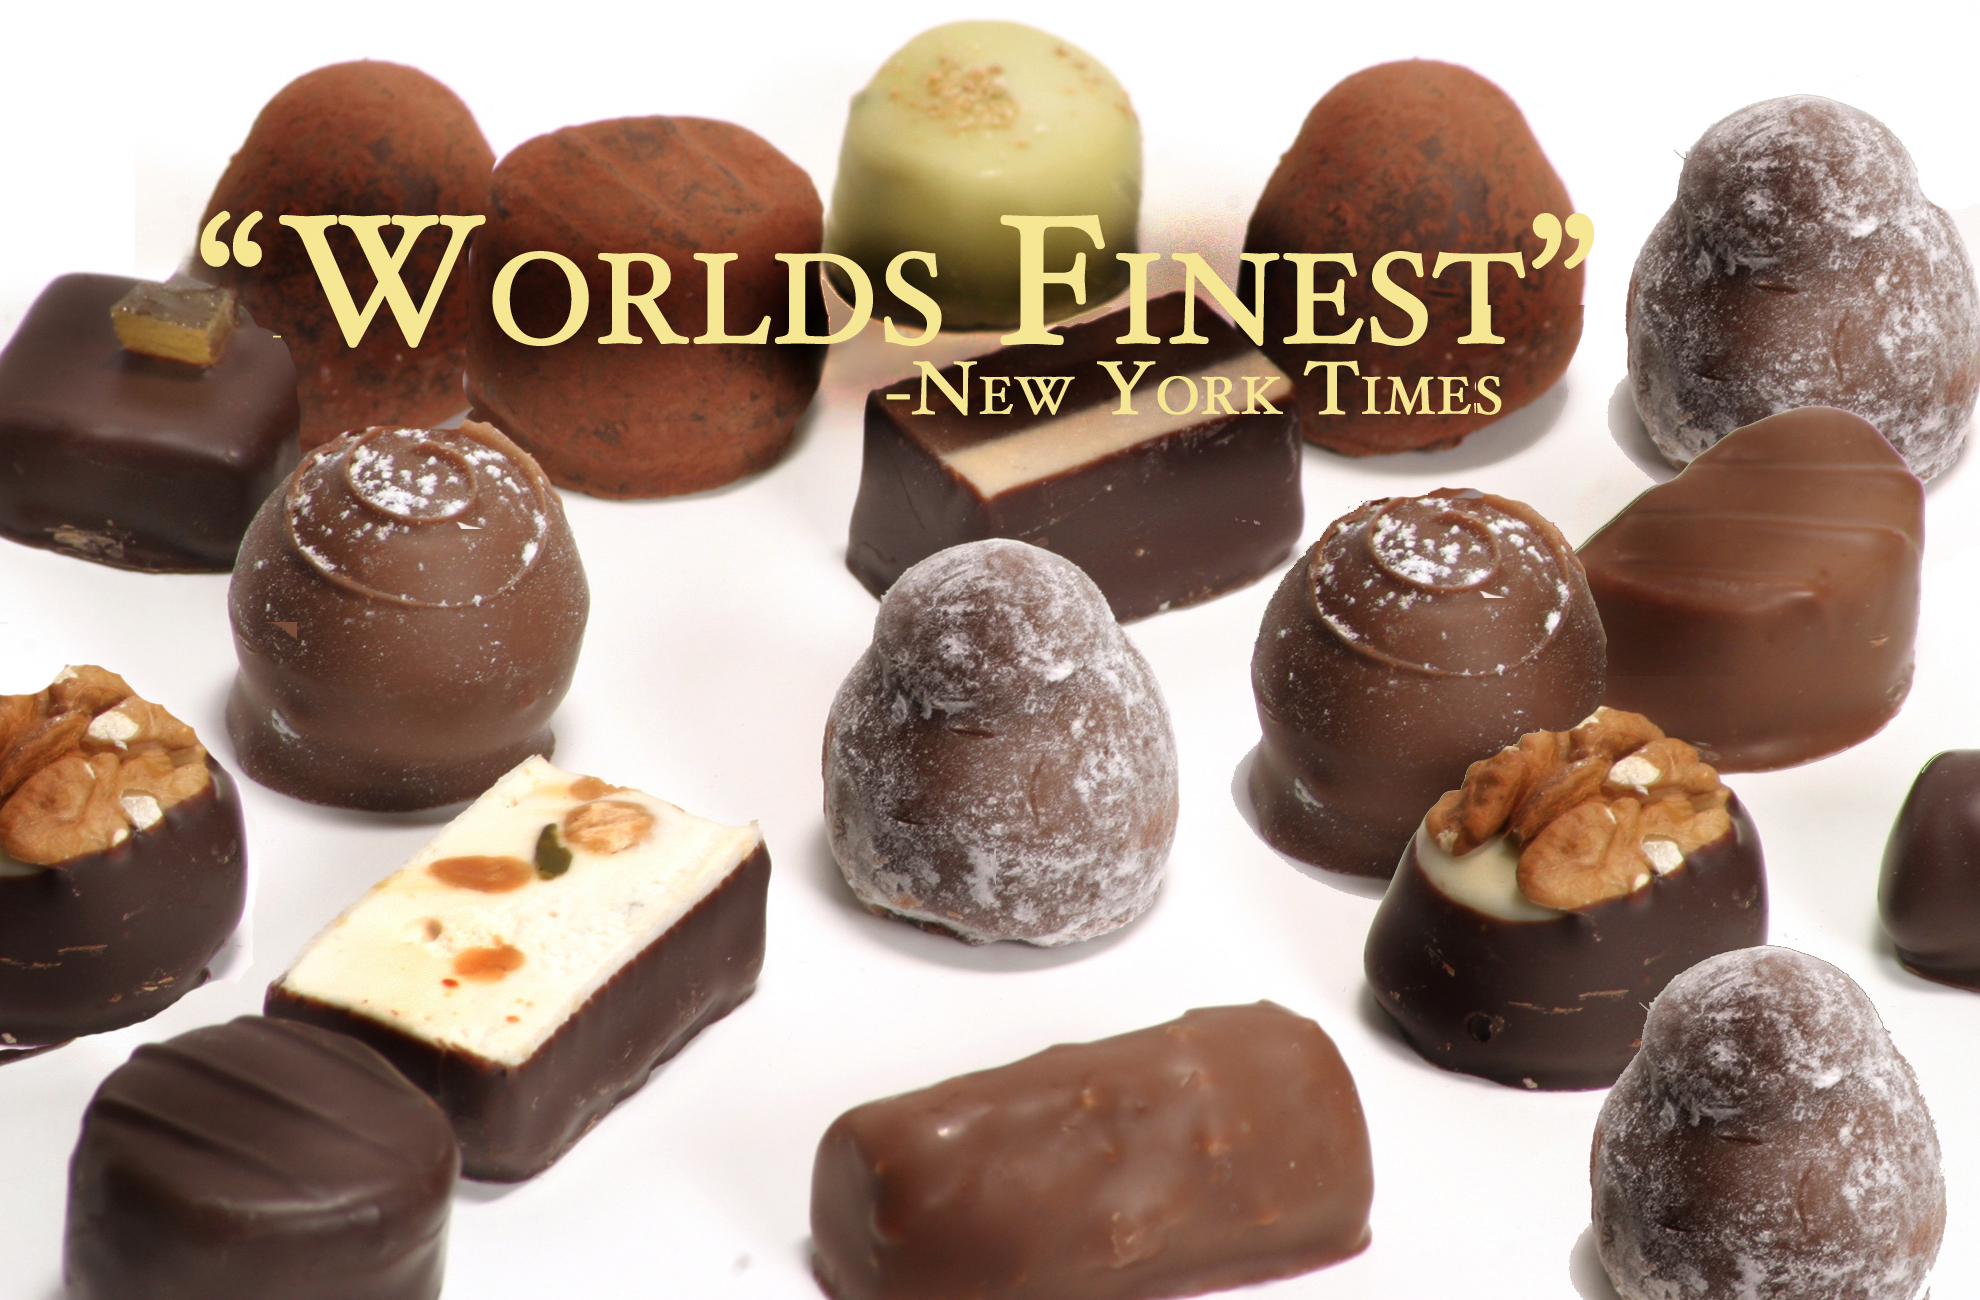 Picture shows an array of Teuscher Chocolate truffles on a white background with overlayed script reading World's Finest, New York Times.